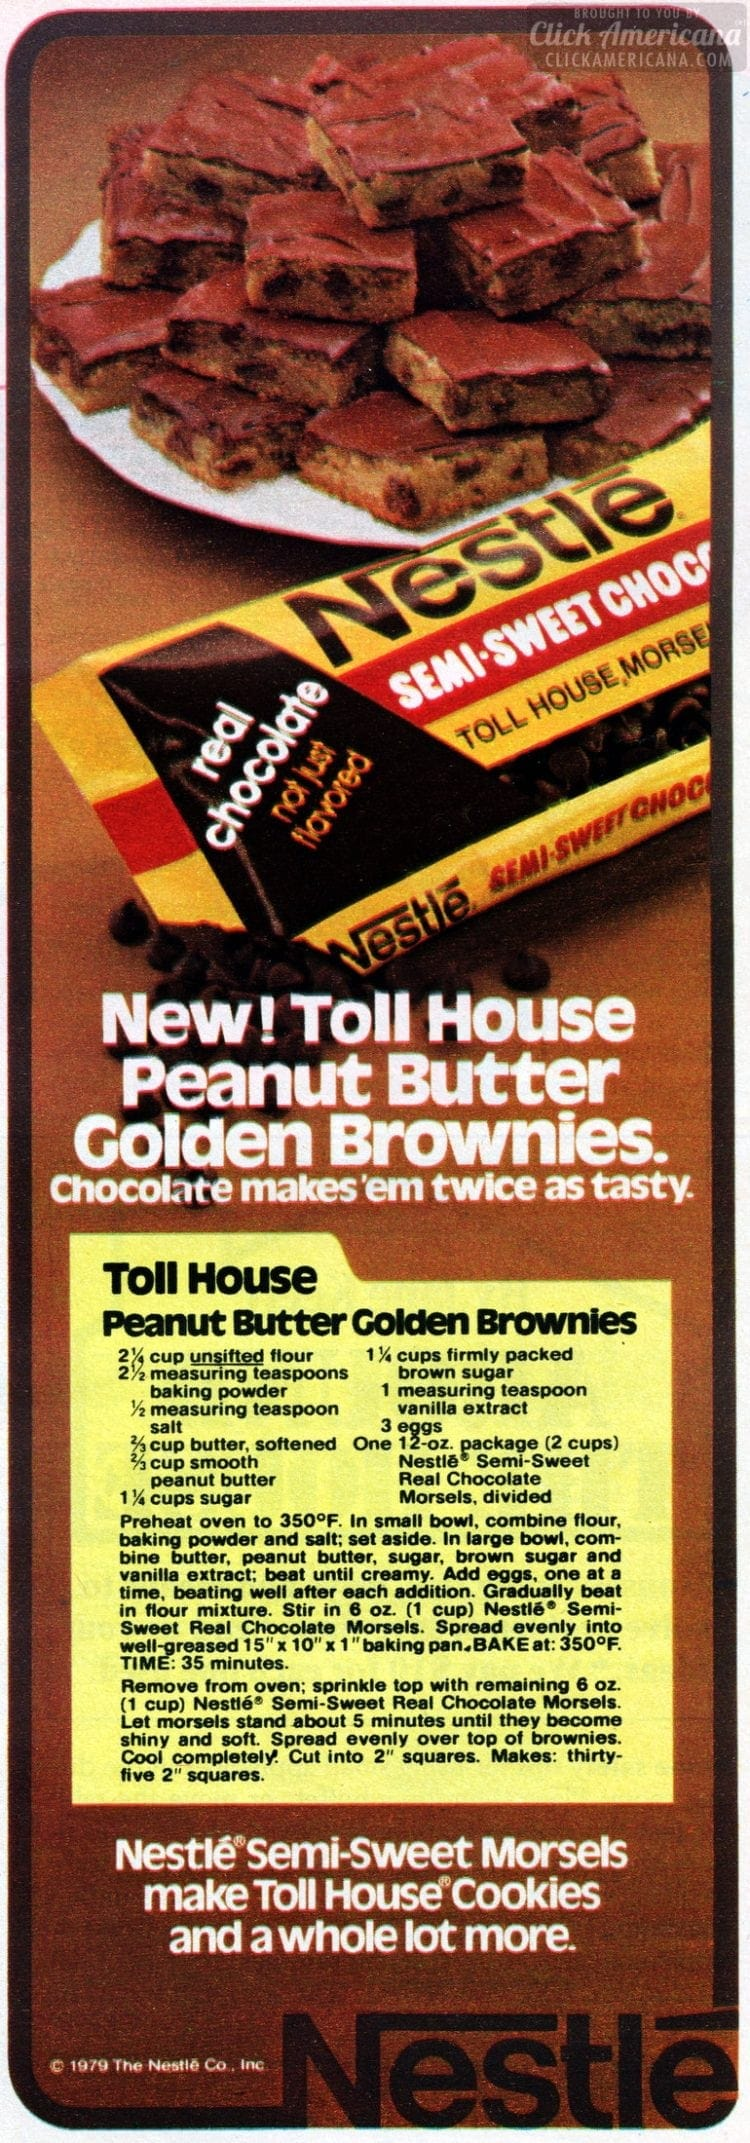 1979 Peanut butter golden brownies with chocolate